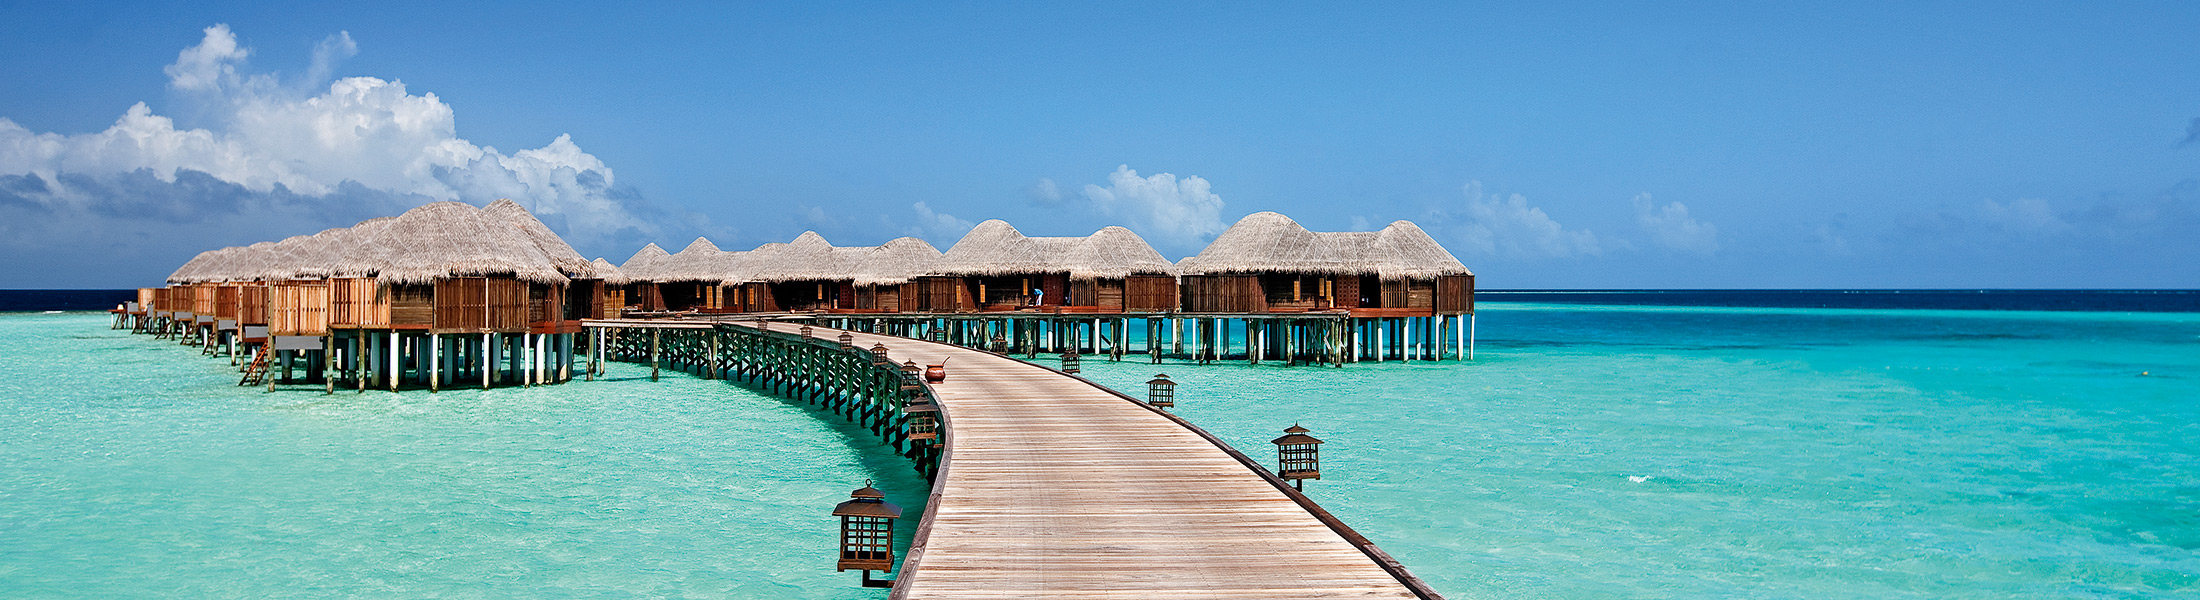 Jetty to the overwater villas at Constance Halaveli